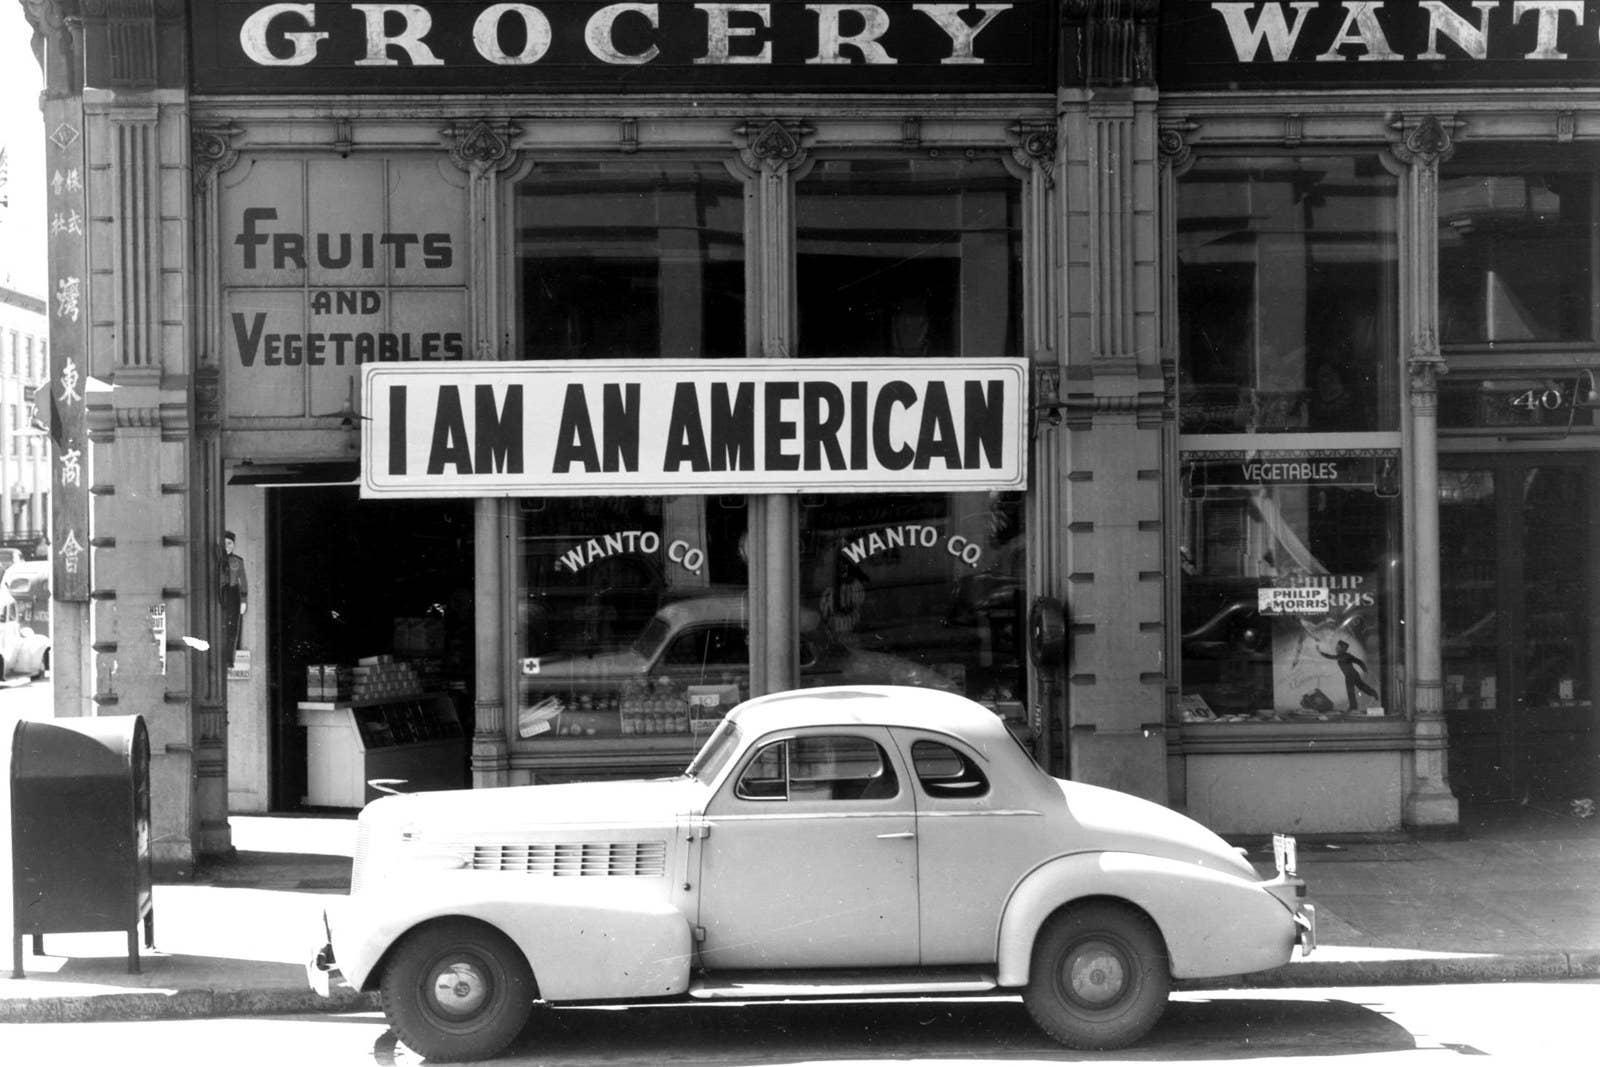 The day after the attack on Pearl Harbor, the owner of this shop in Oakland, California, who is a University of California graduate of Japanese descent, put this notice across his shop front.